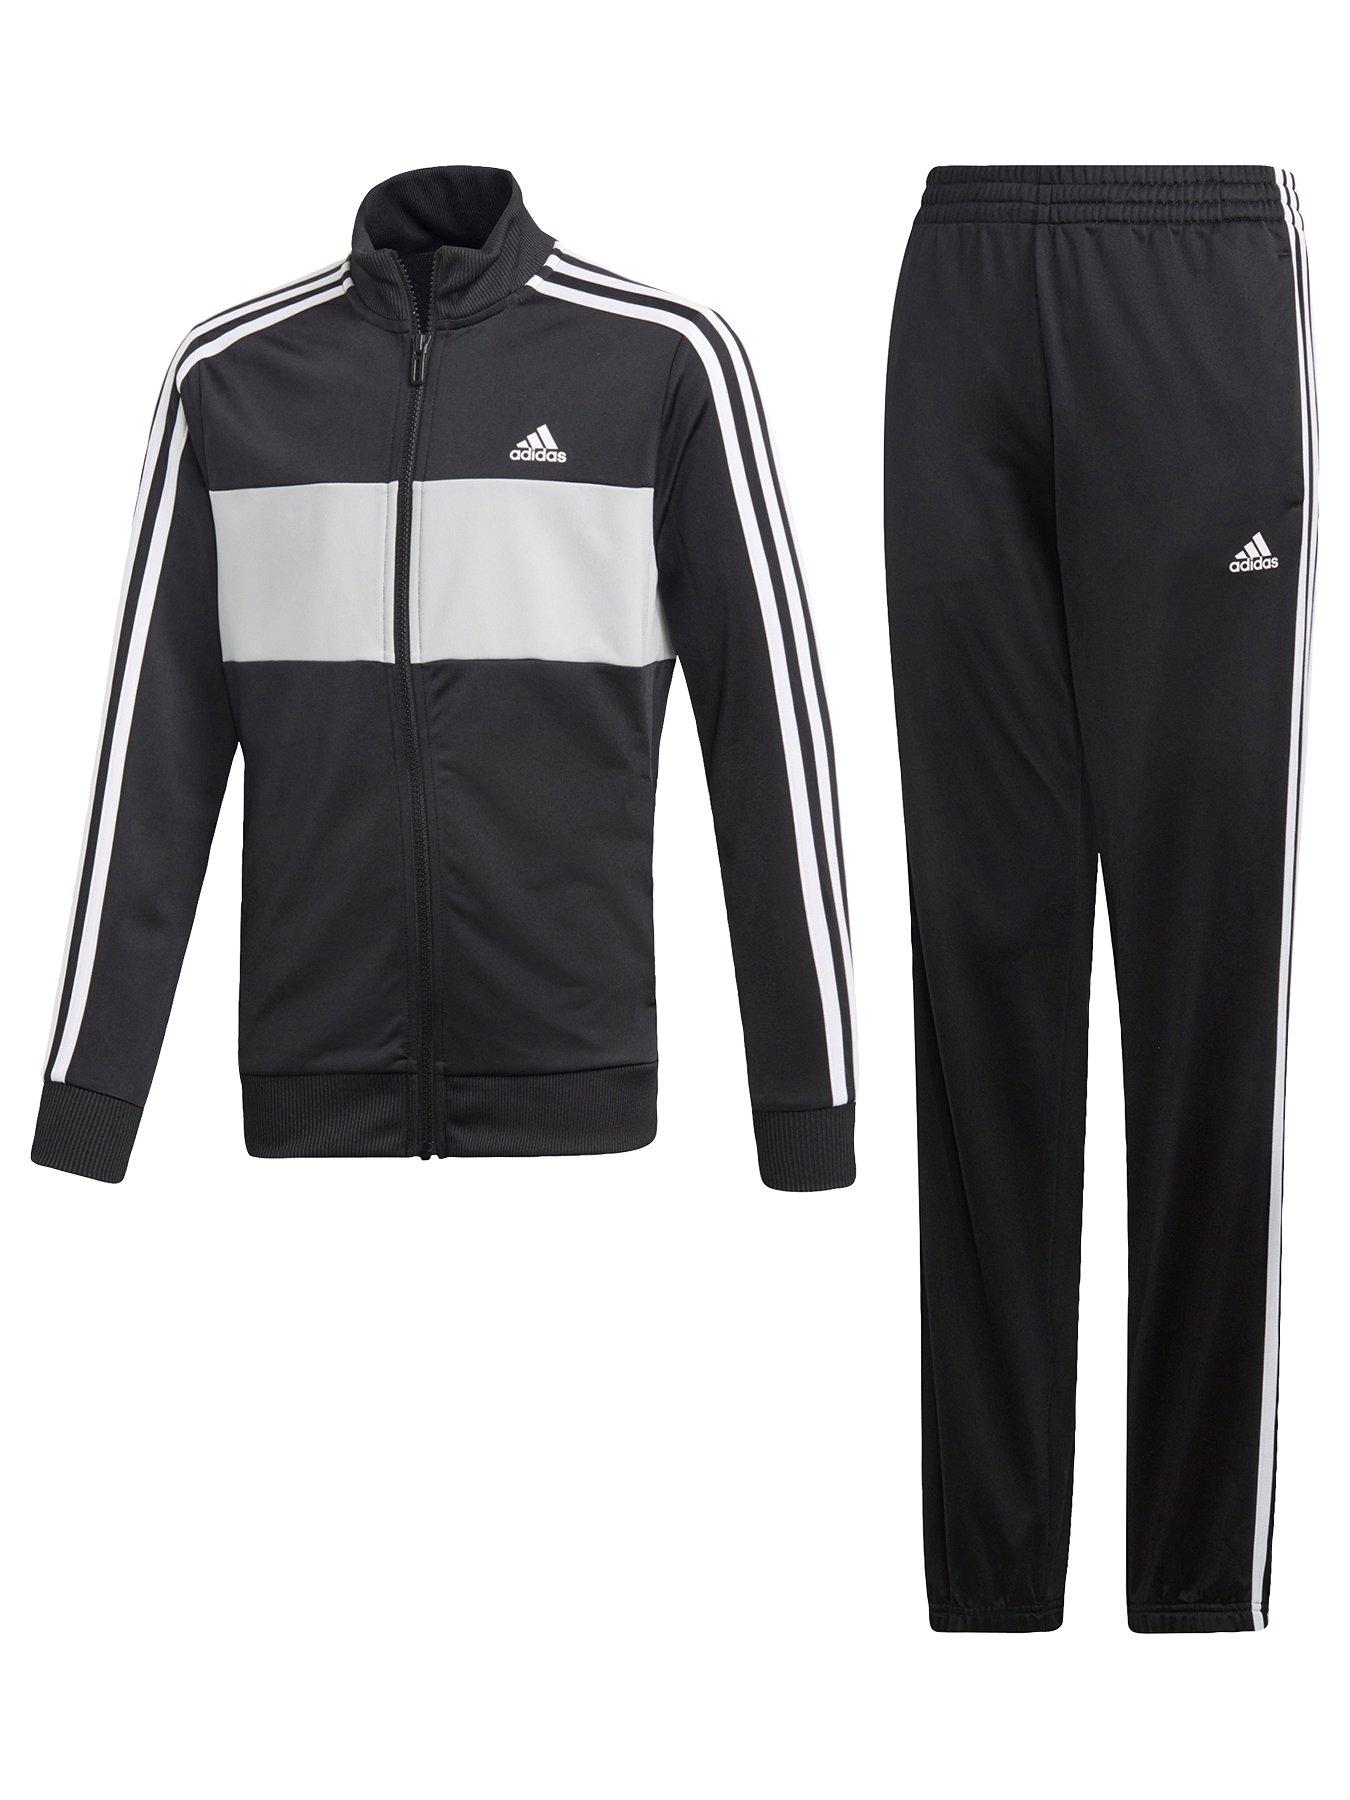 Kids Tracksuits | Childrens Tracksuits | Very.co.uk